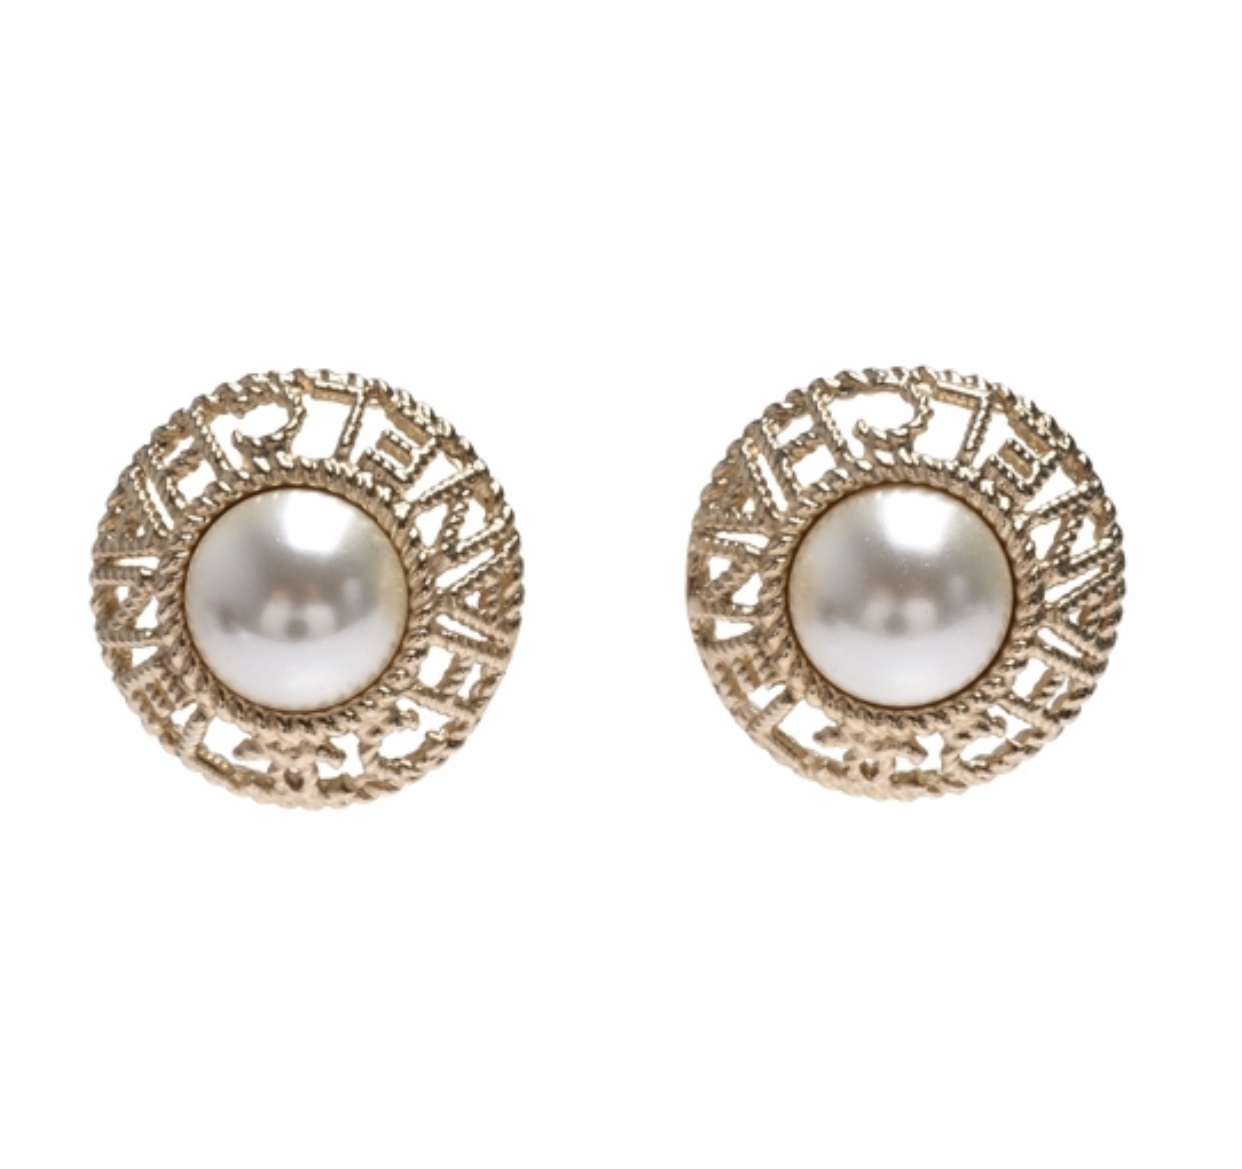 Authentic CHANEL 2019 CC Logo XL Pearl LETTER LOGO STUD Earrings Gold  - $499.99